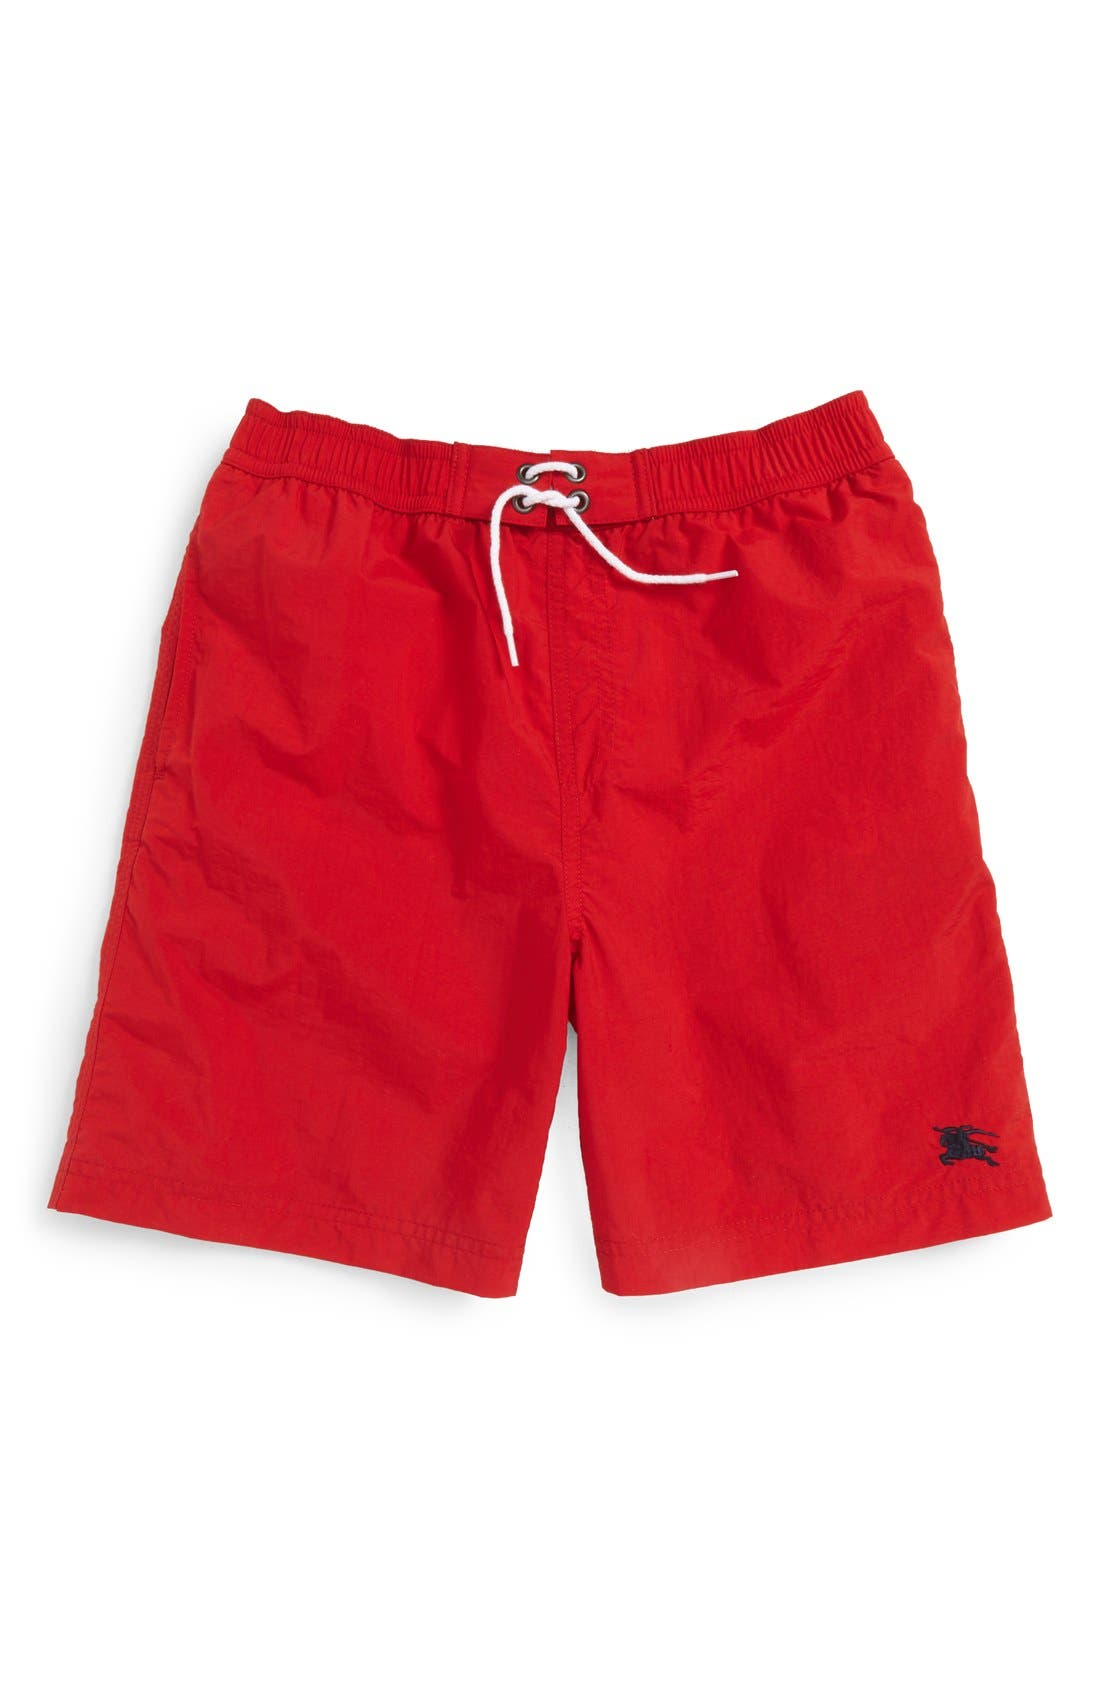 'Galvin' Swim Trunks,                             Main thumbnail 1, color,